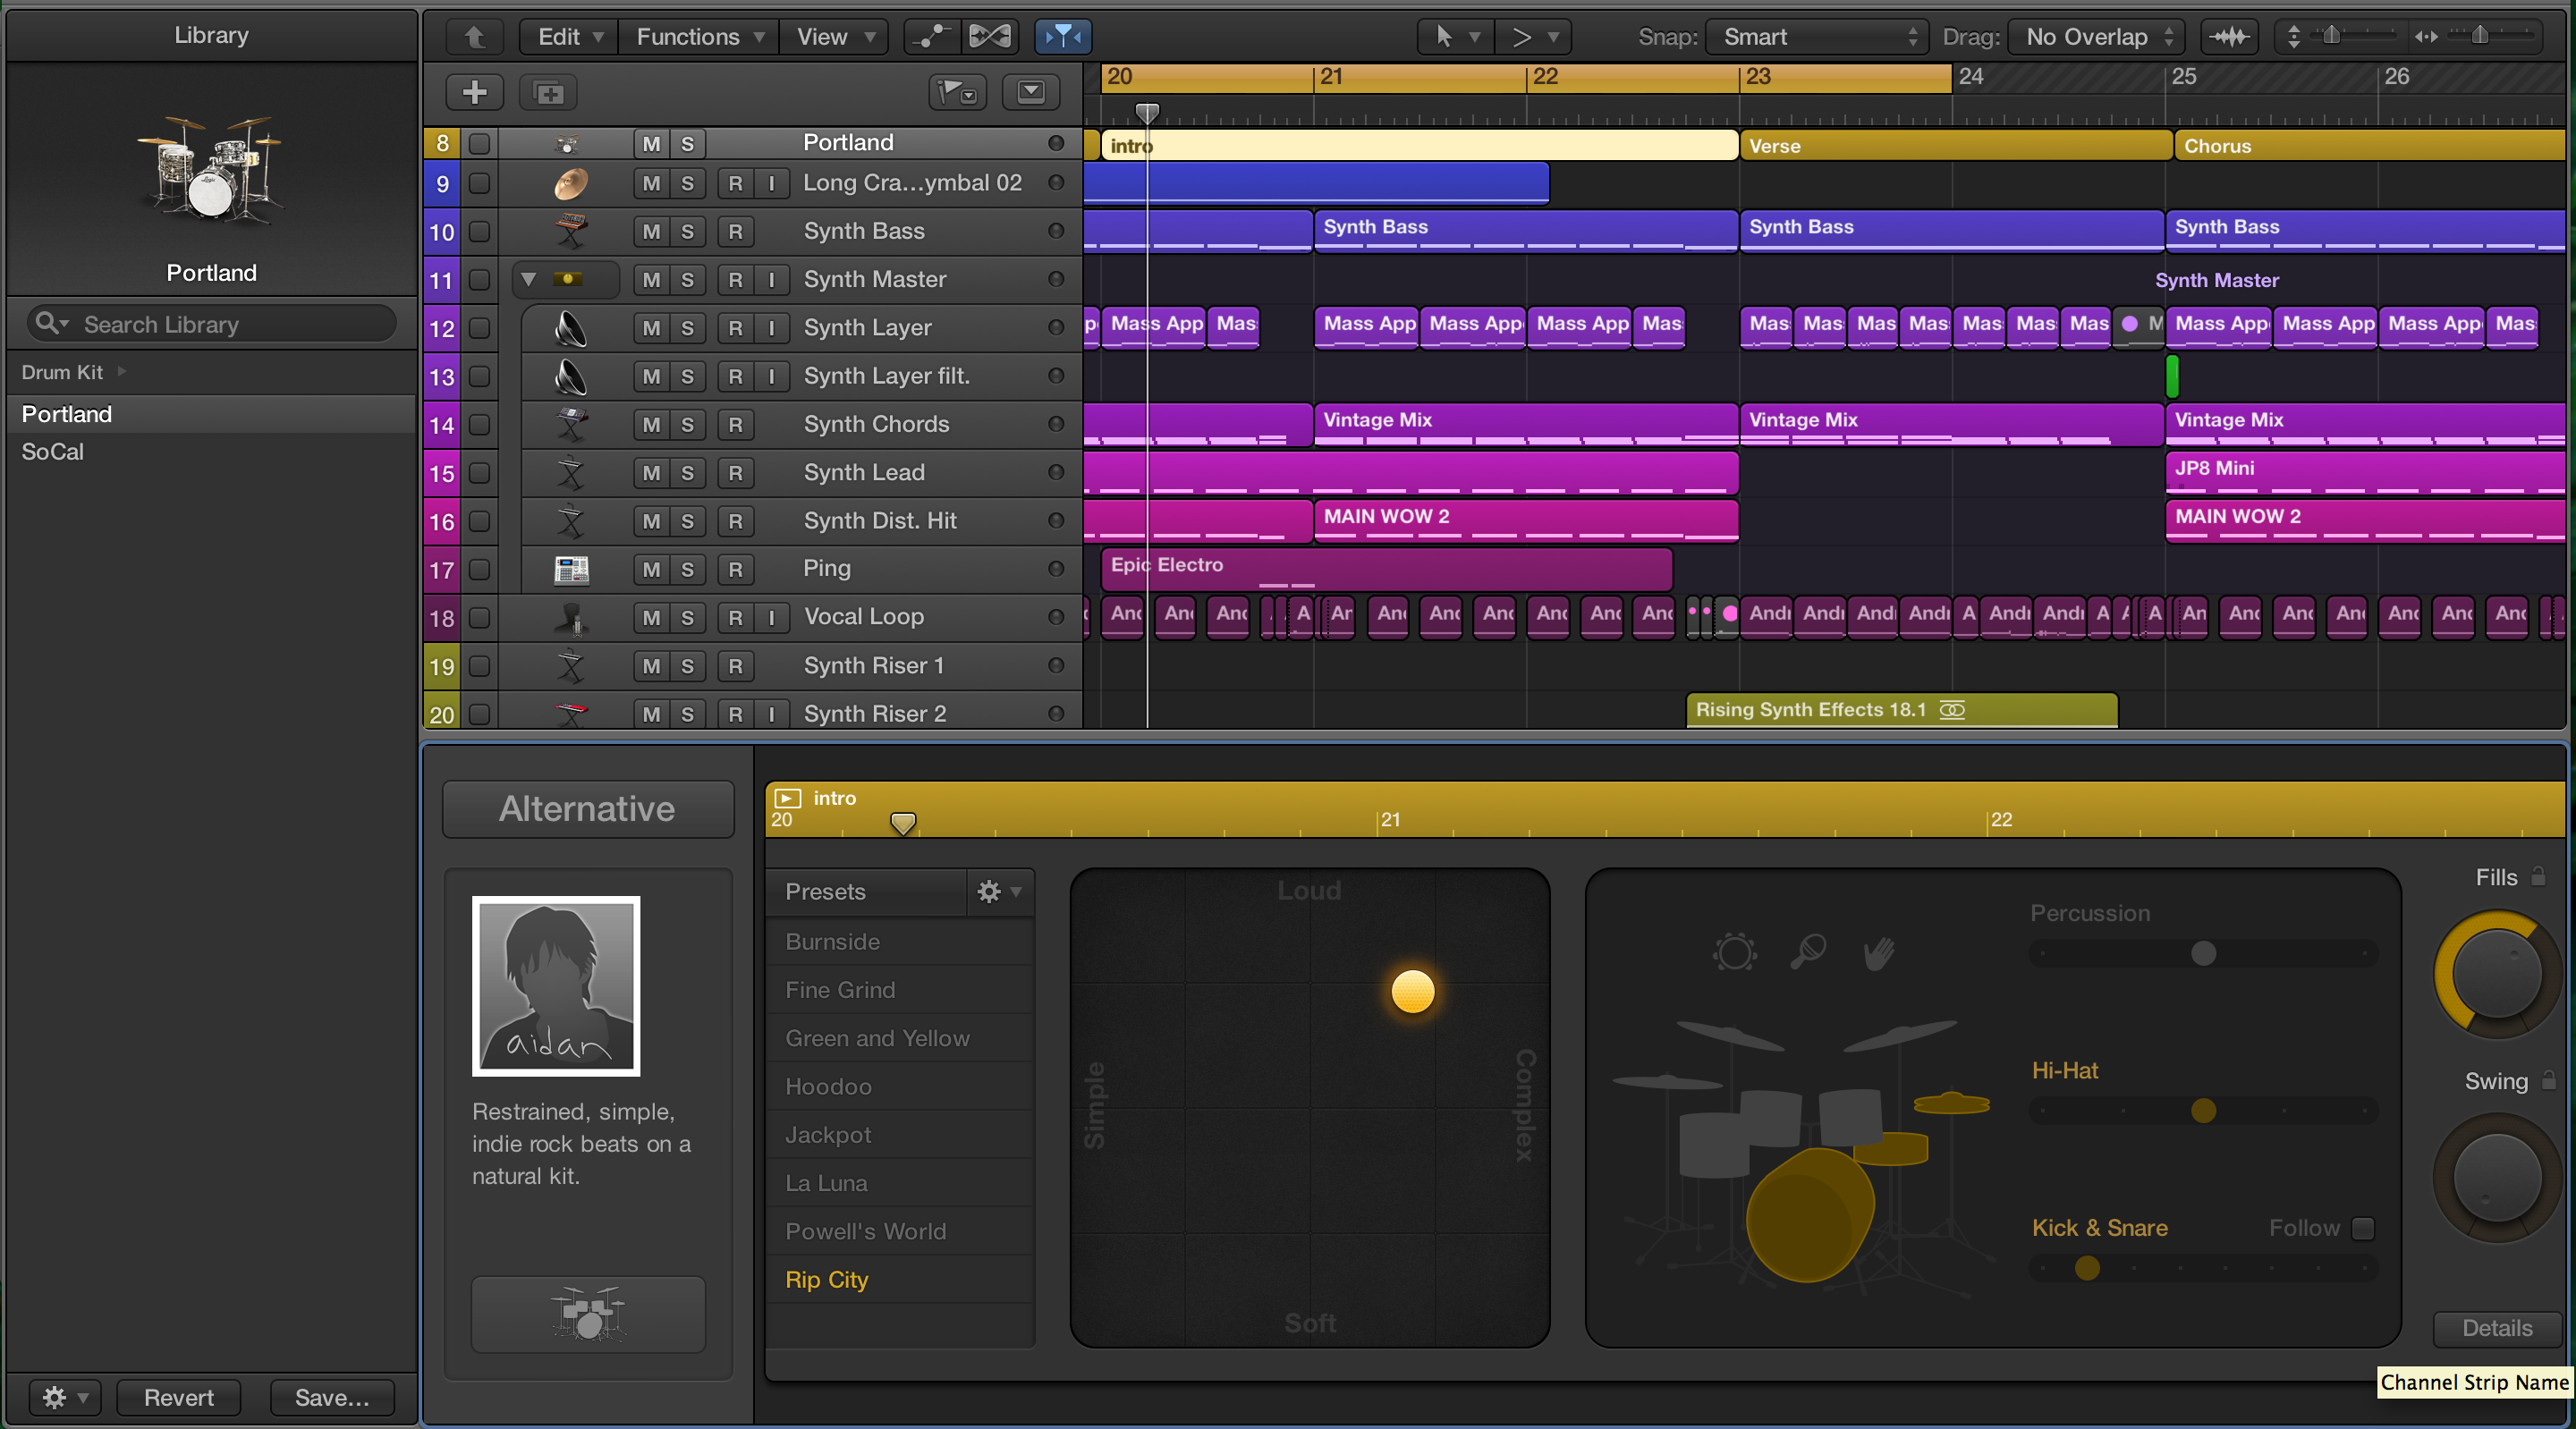 Logic Pro X review: Powerful new features & a simplified UI